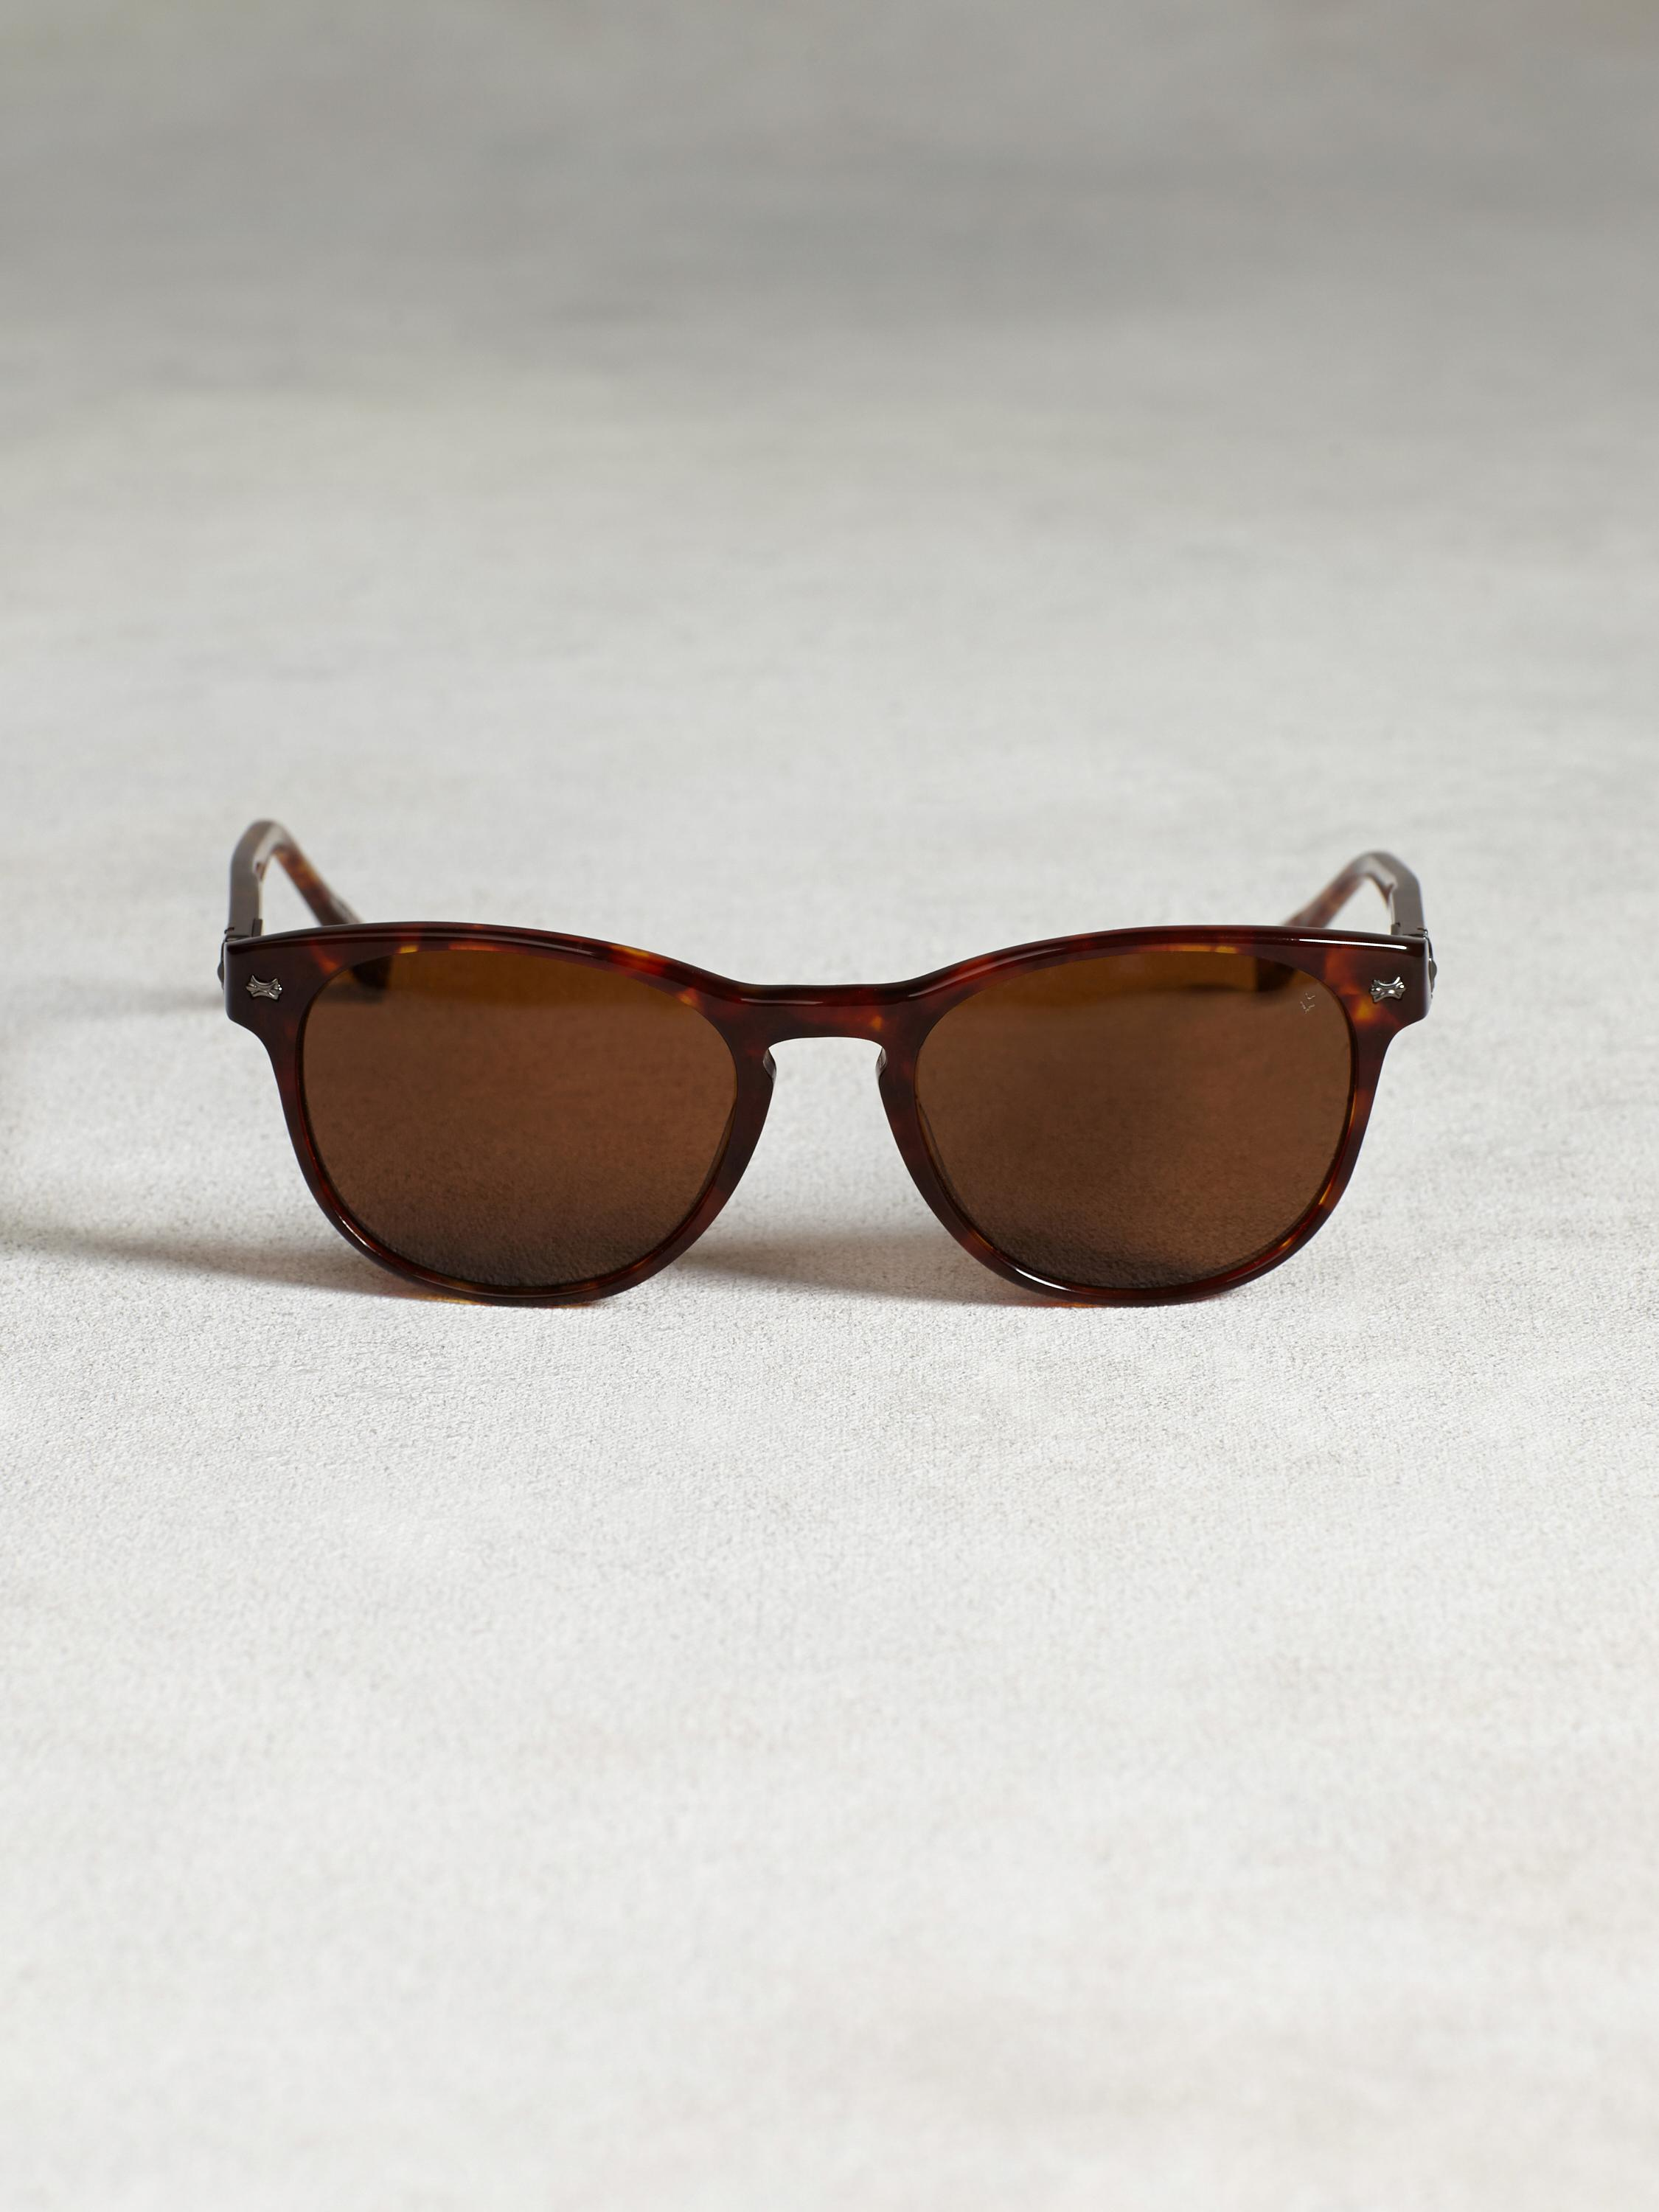 Retro Sunglass With Guitar Head Detail